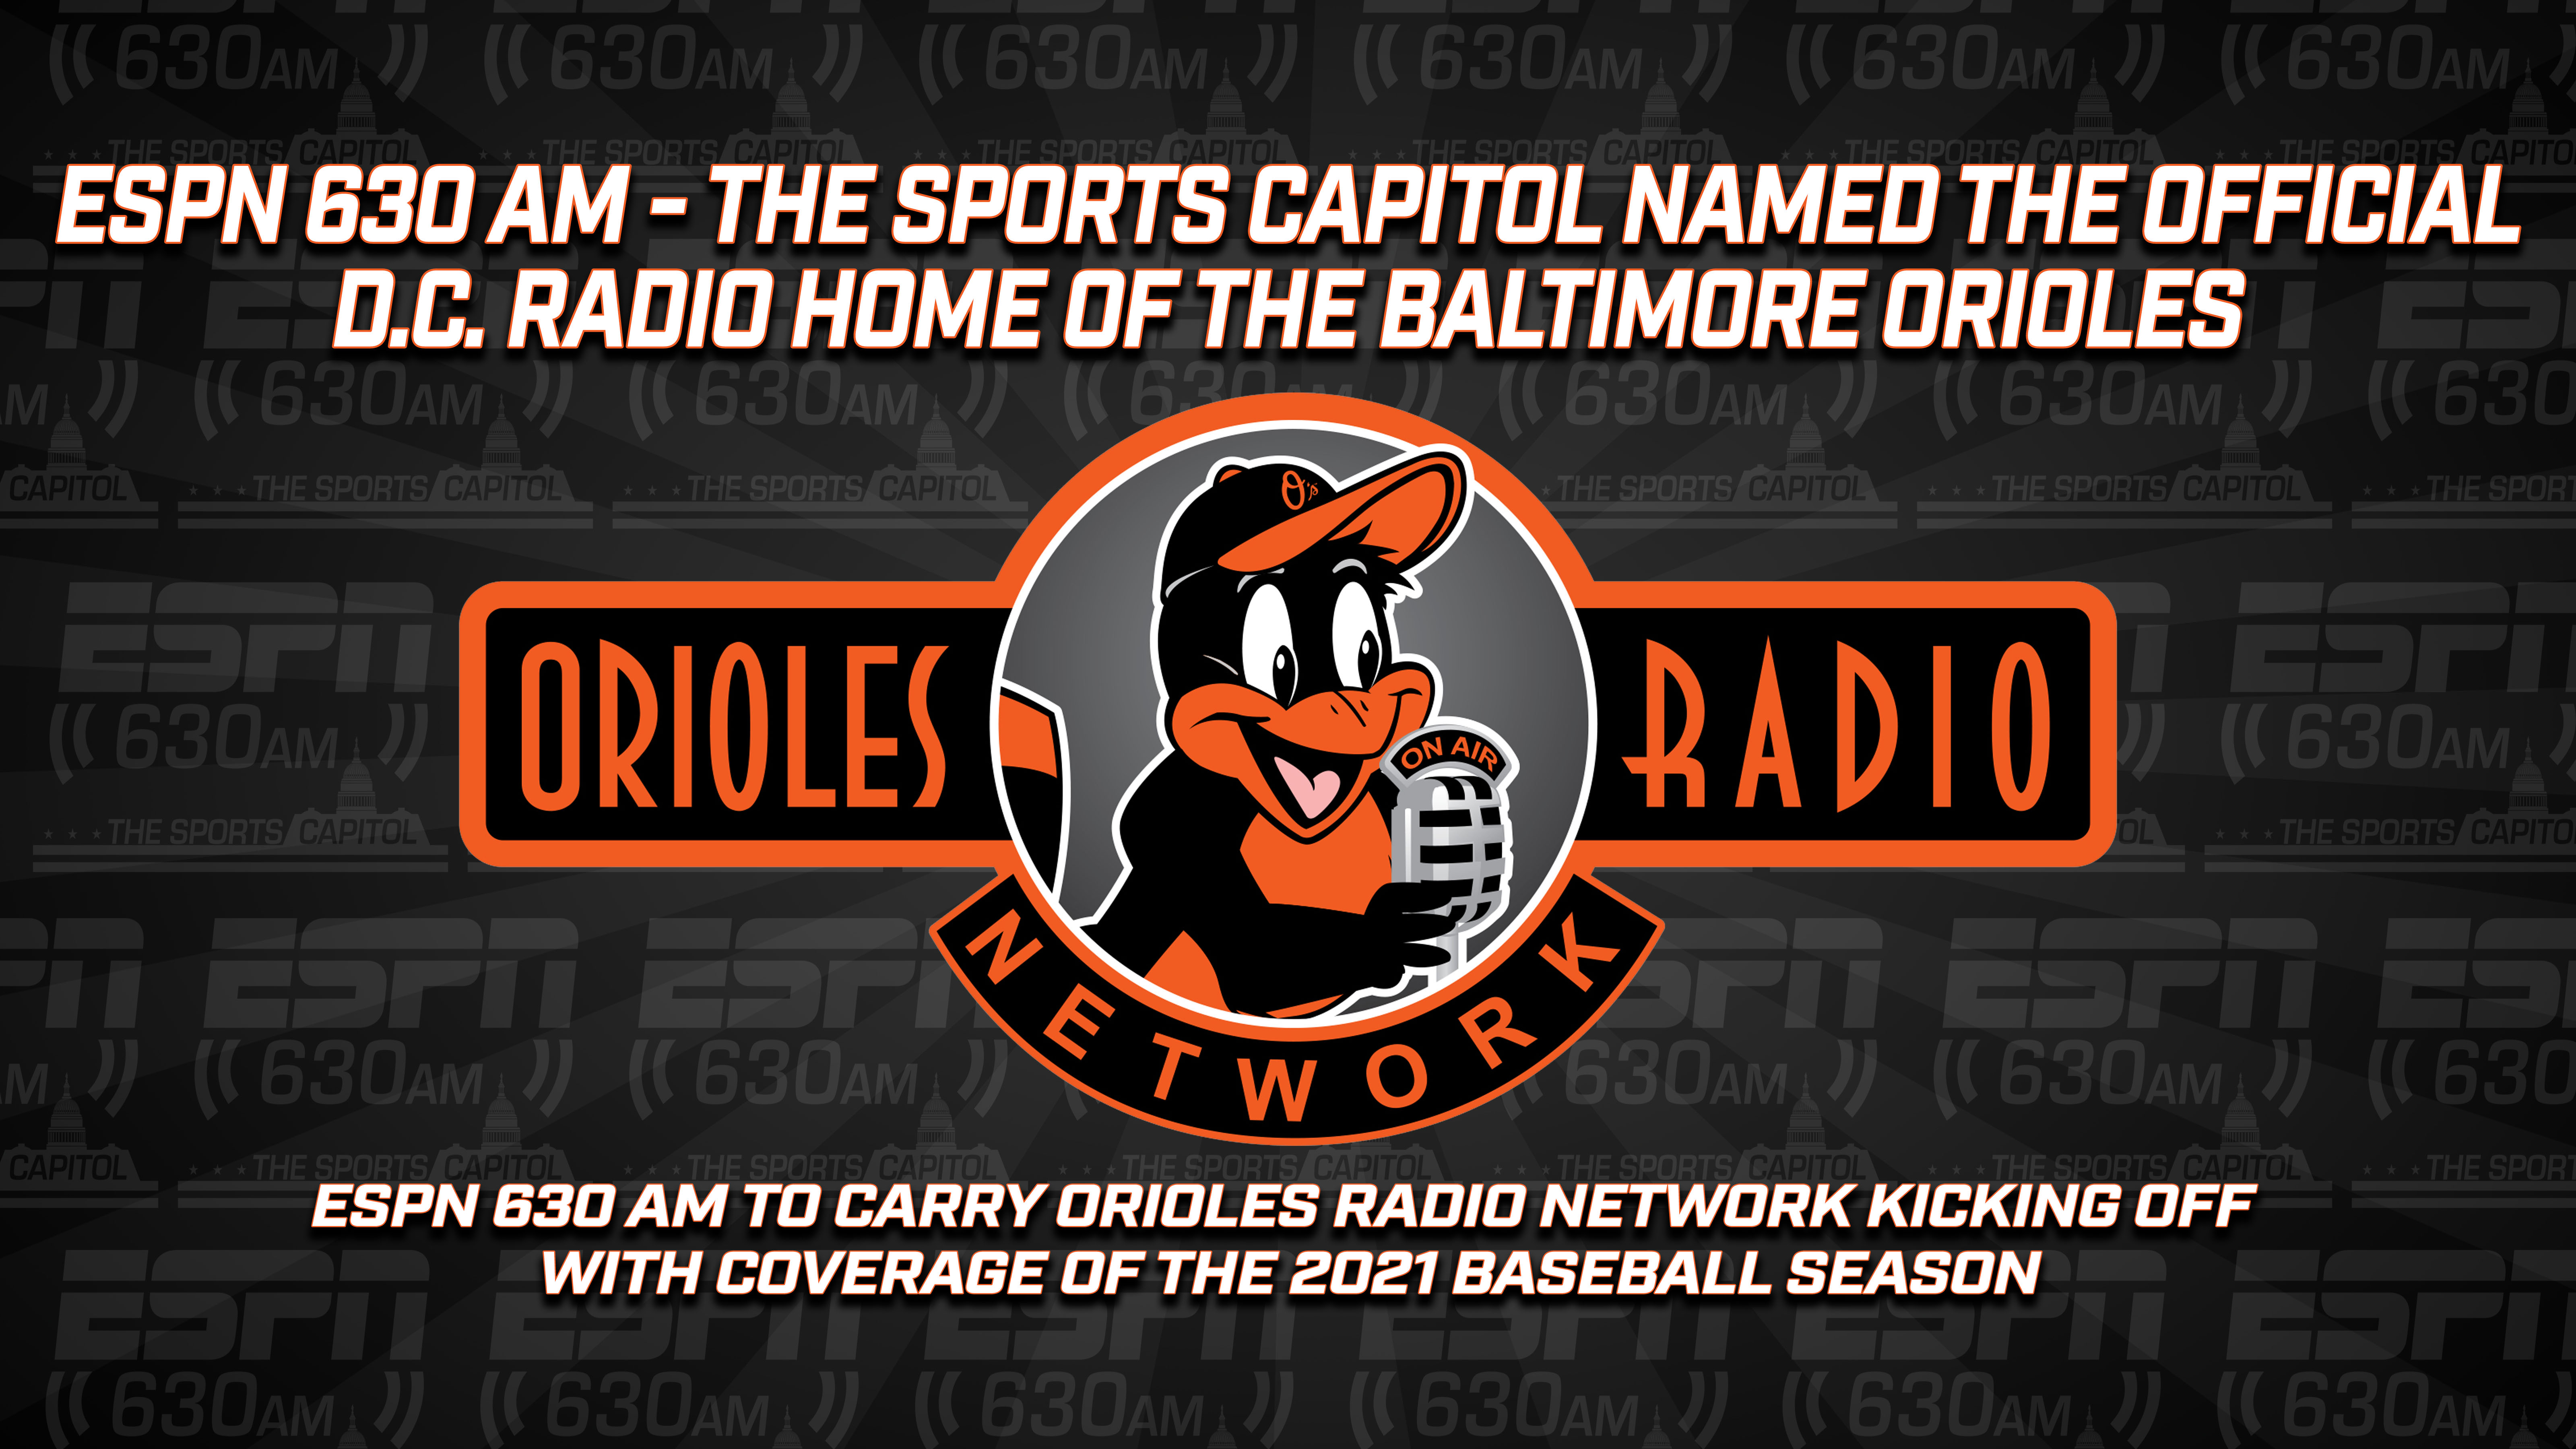 ESPN 630 AM The Sports Capitol Named the Official Washington, D.C. Radio Home of the Baltimore Orioles